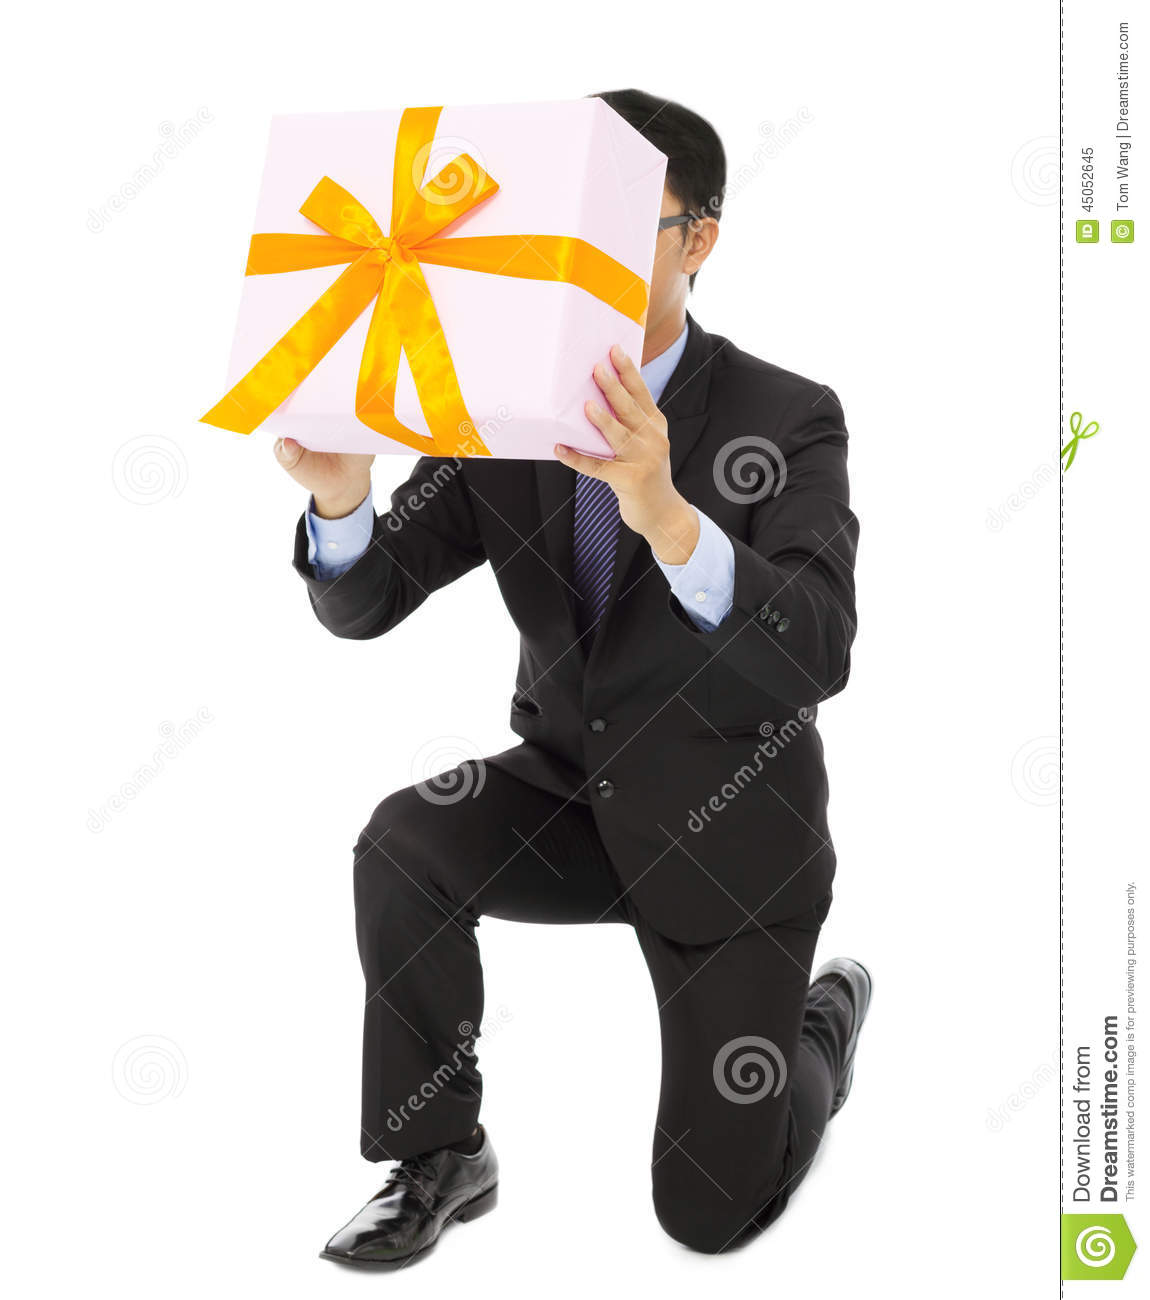 Businessman holding a gift box and kneel.